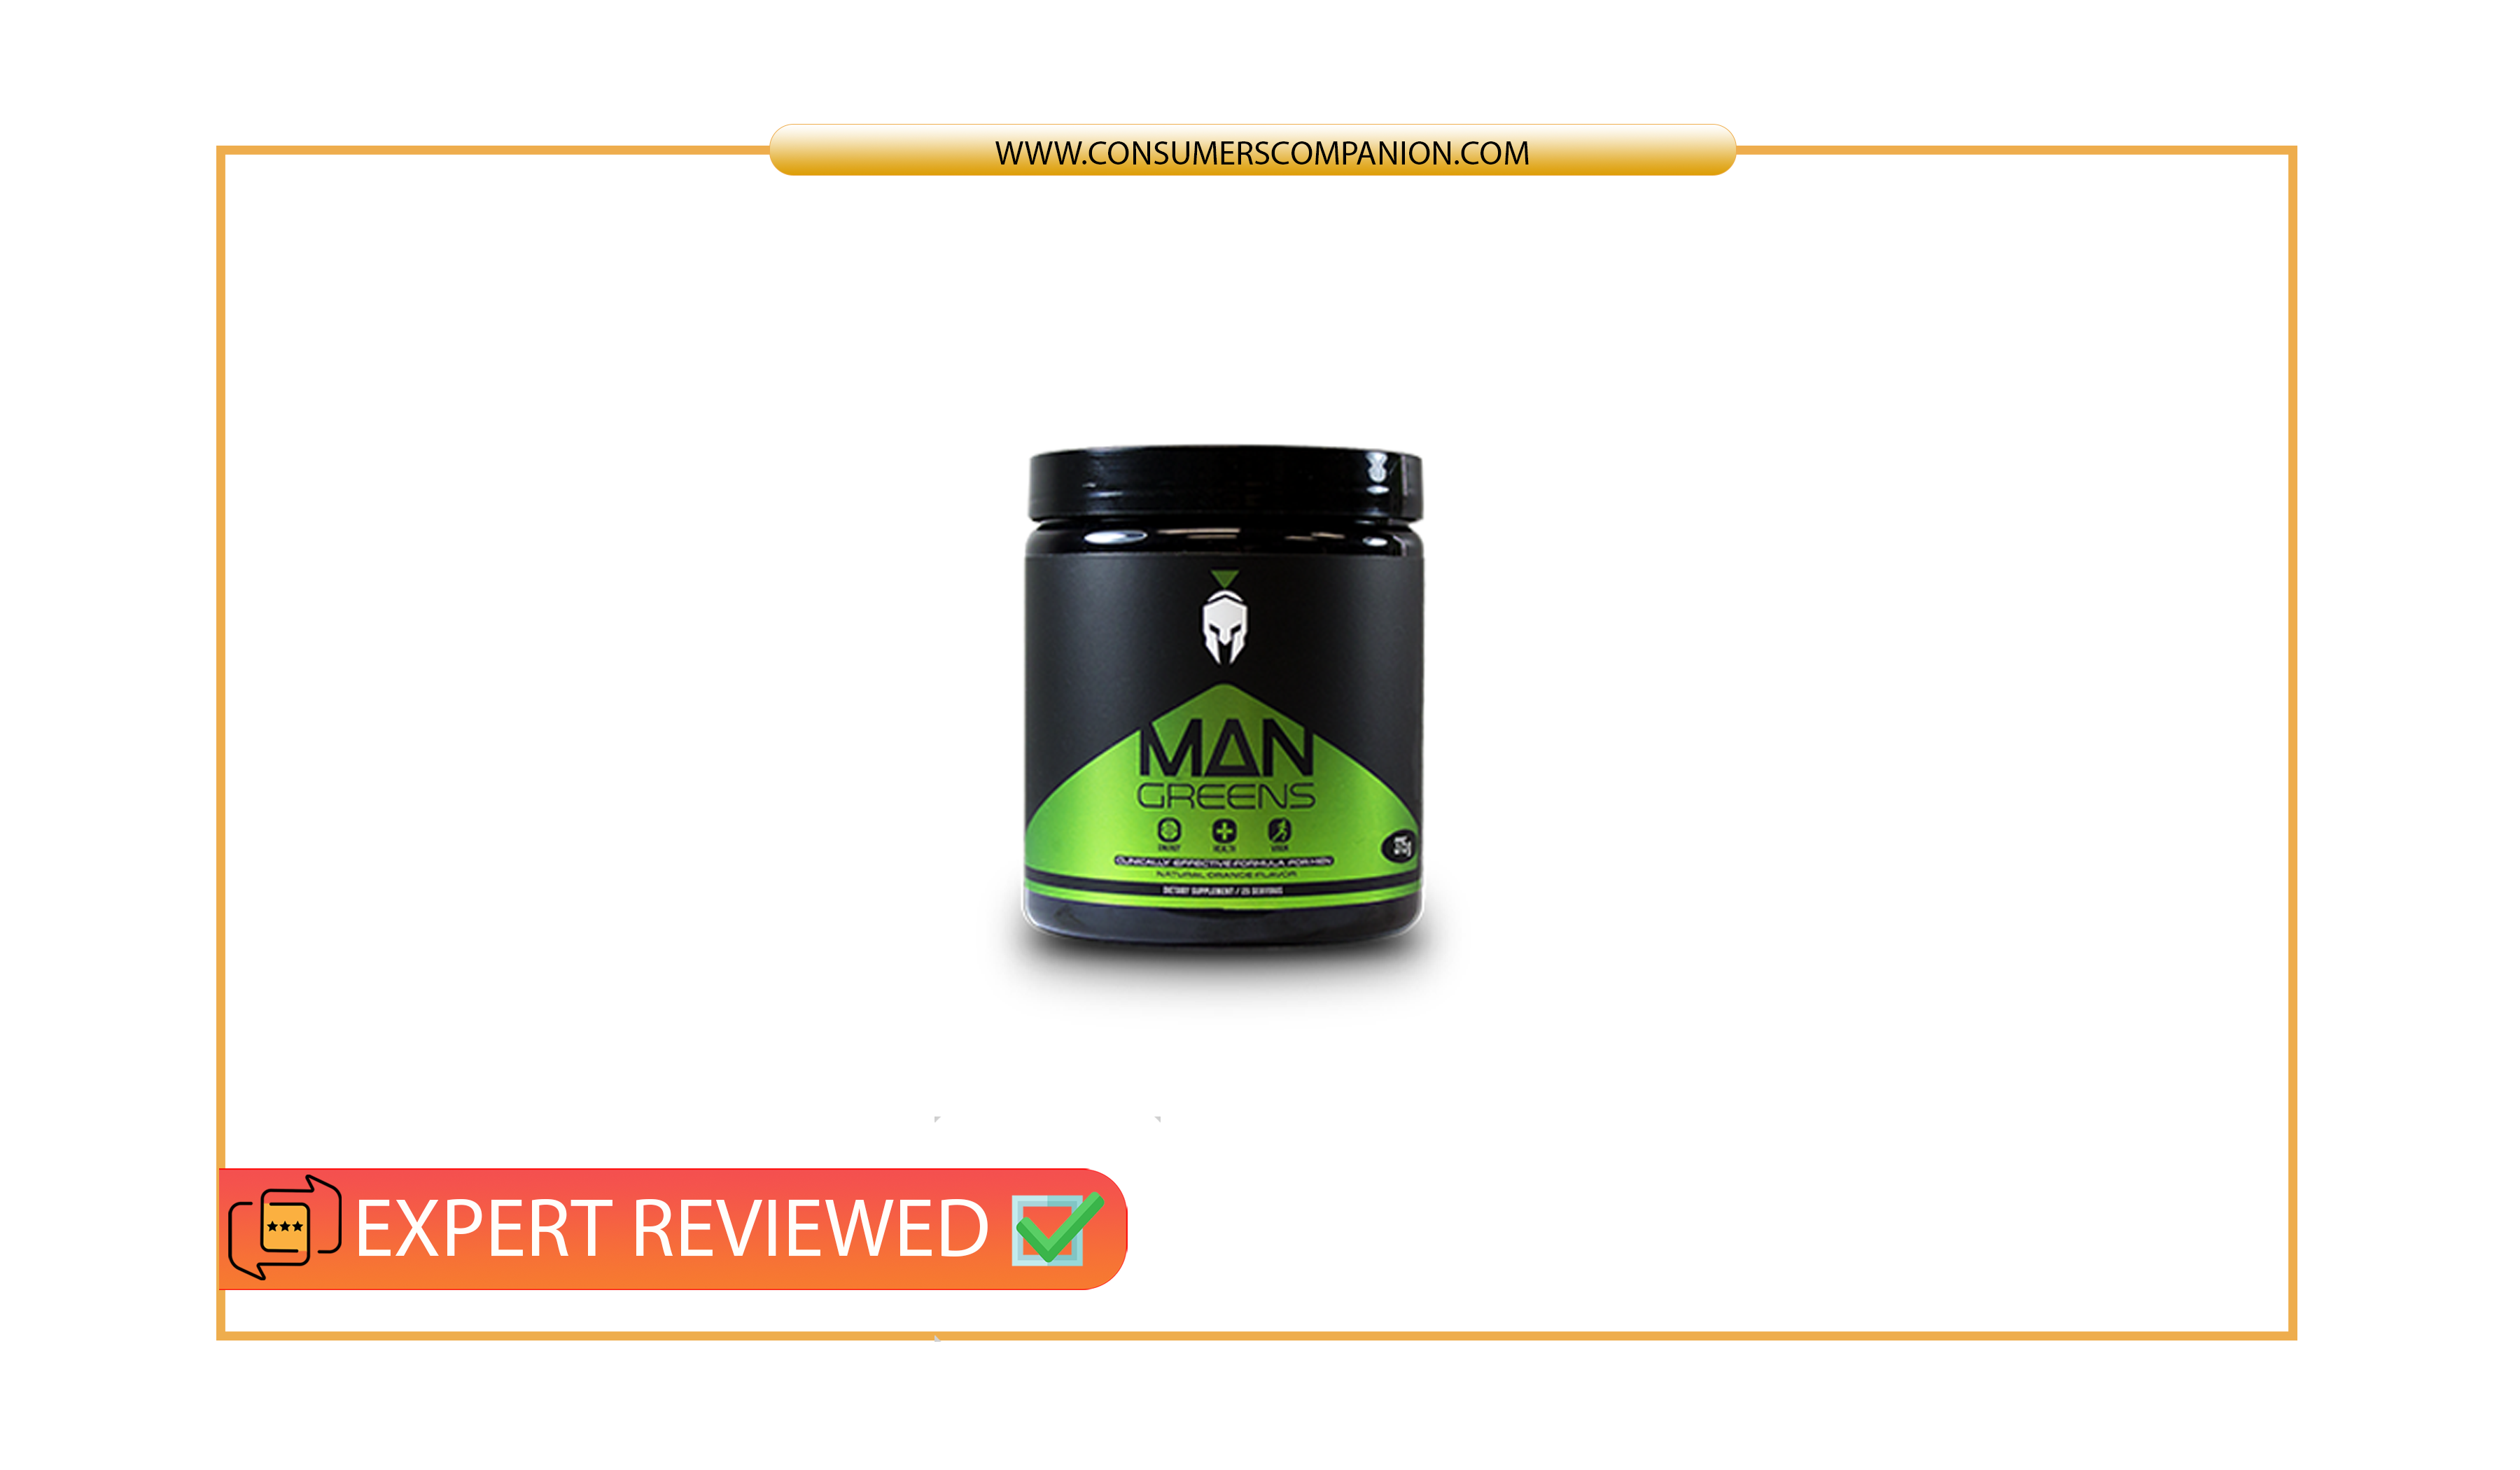 Man green reviews